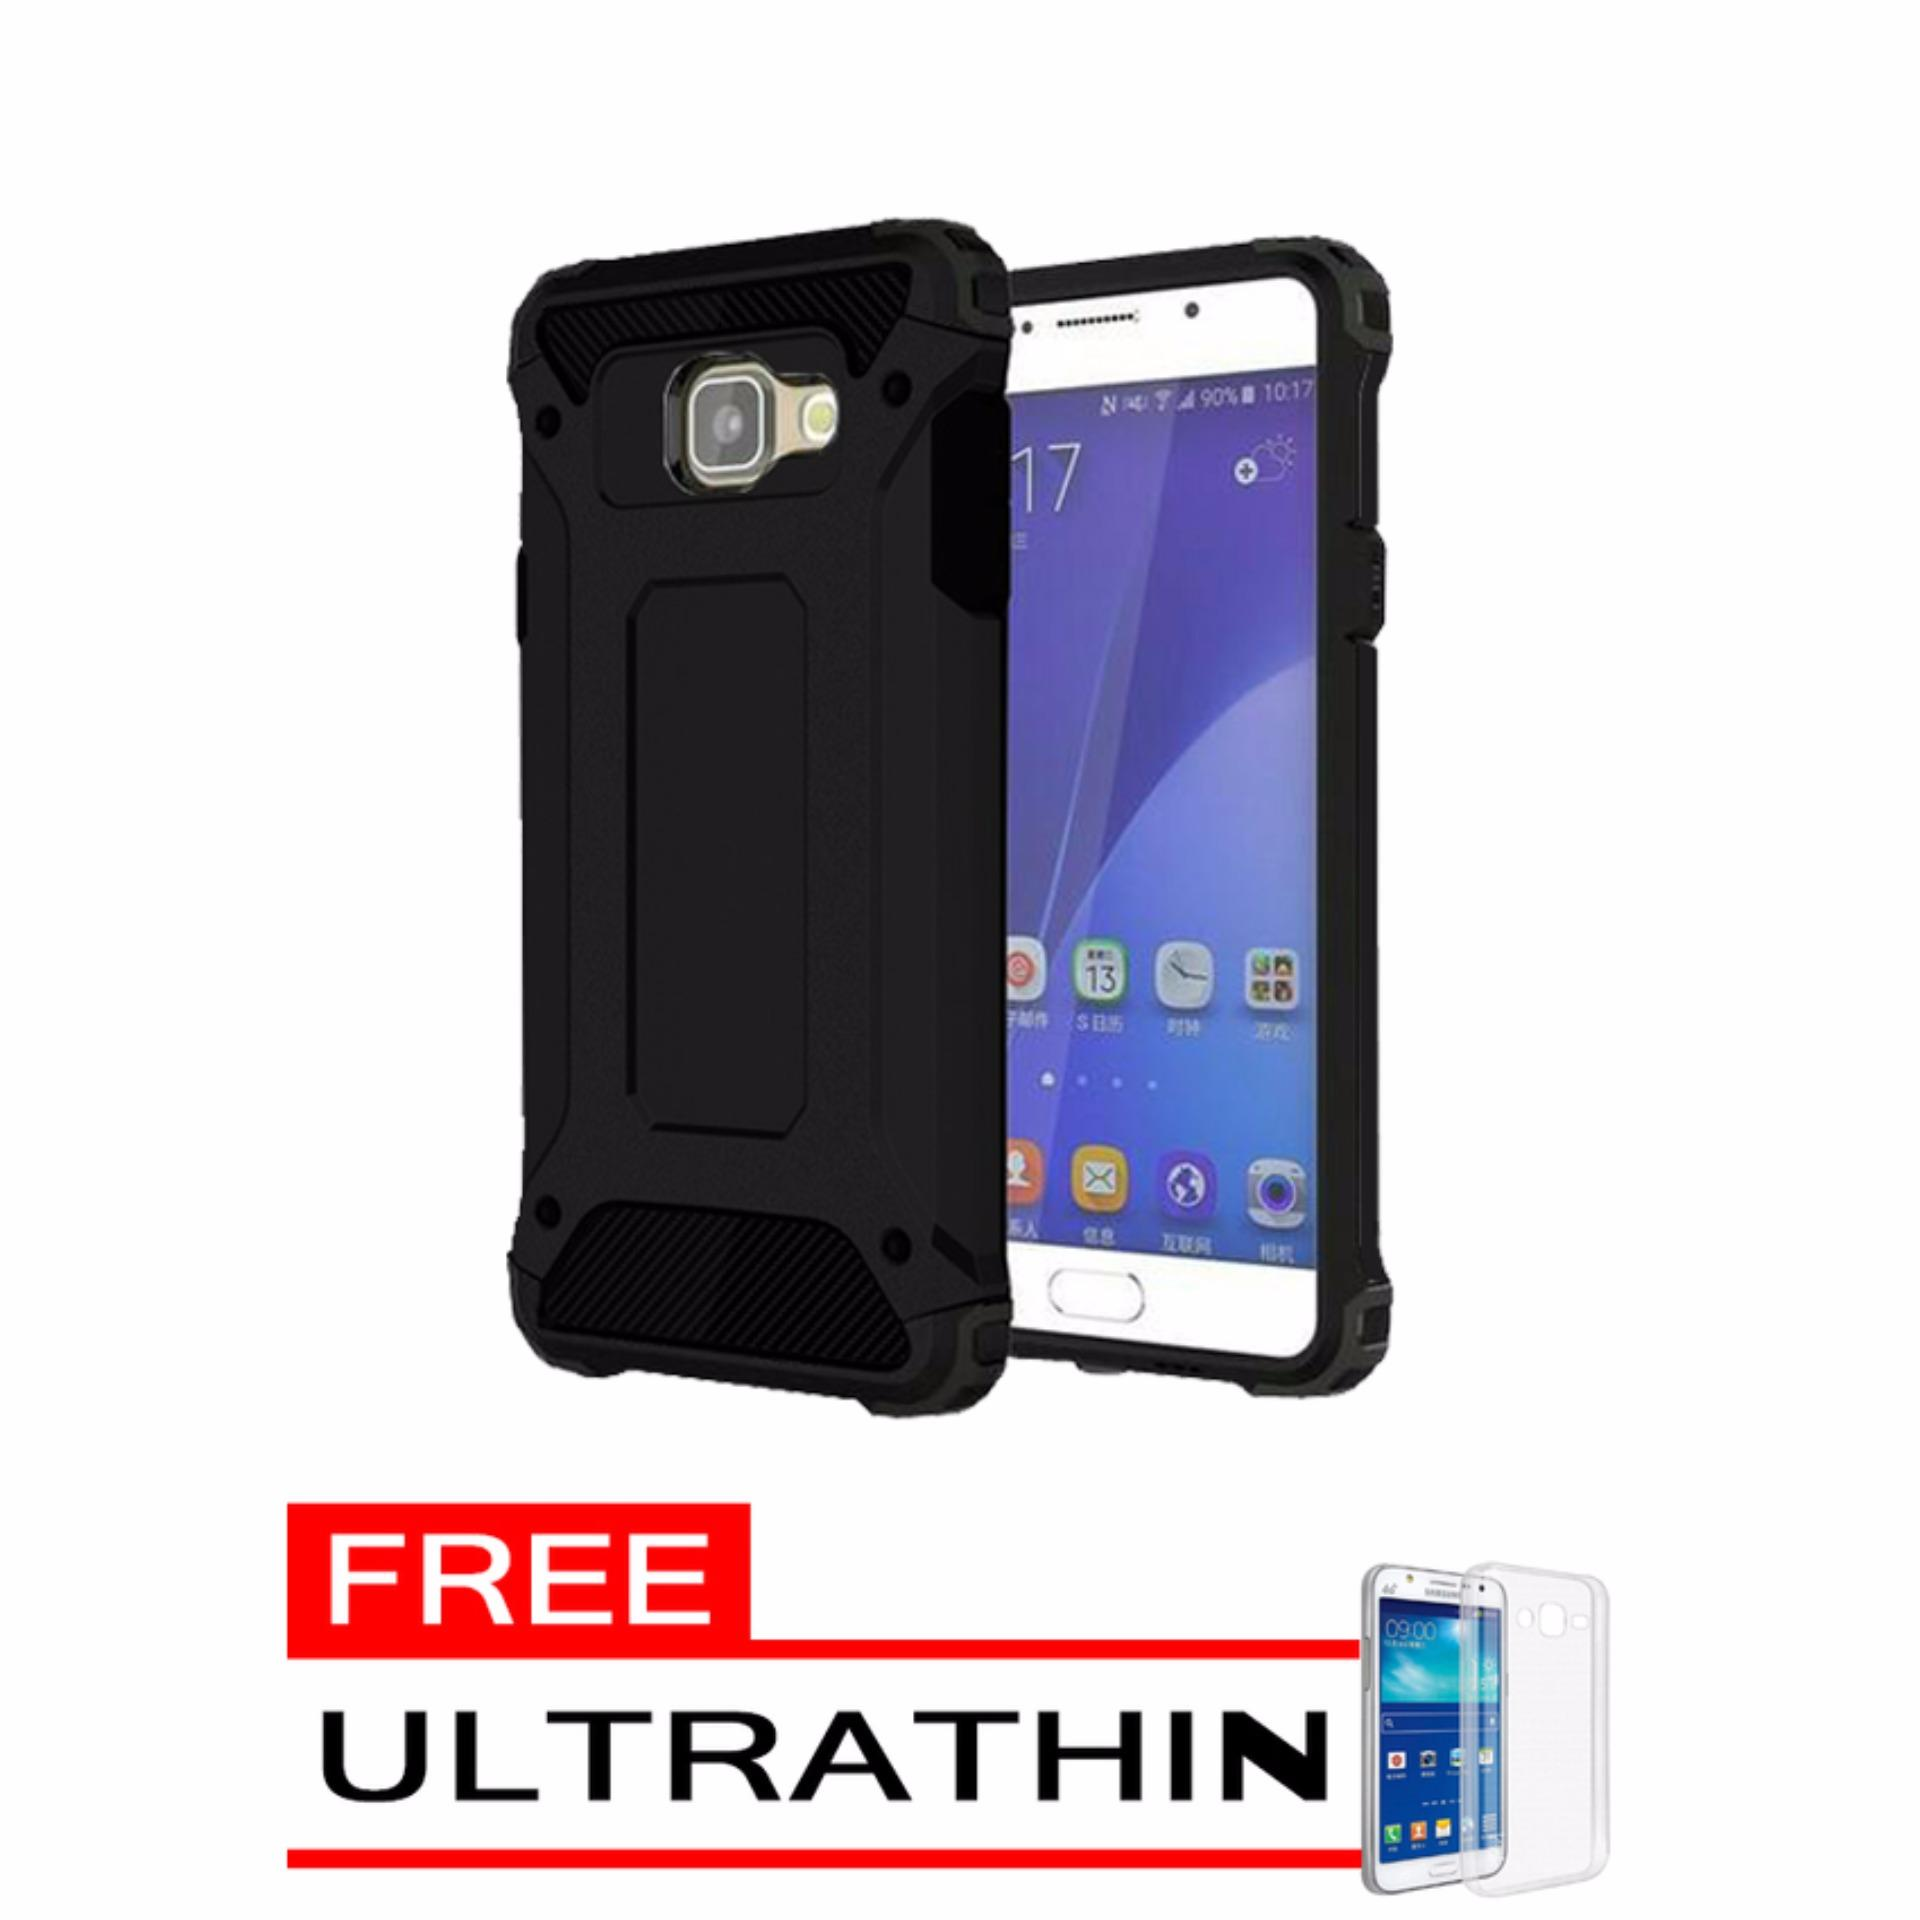 Ultrathin Tpu Shining Chrome Case For Samsung Galaxy J7 Prime Gold Source Softcase .